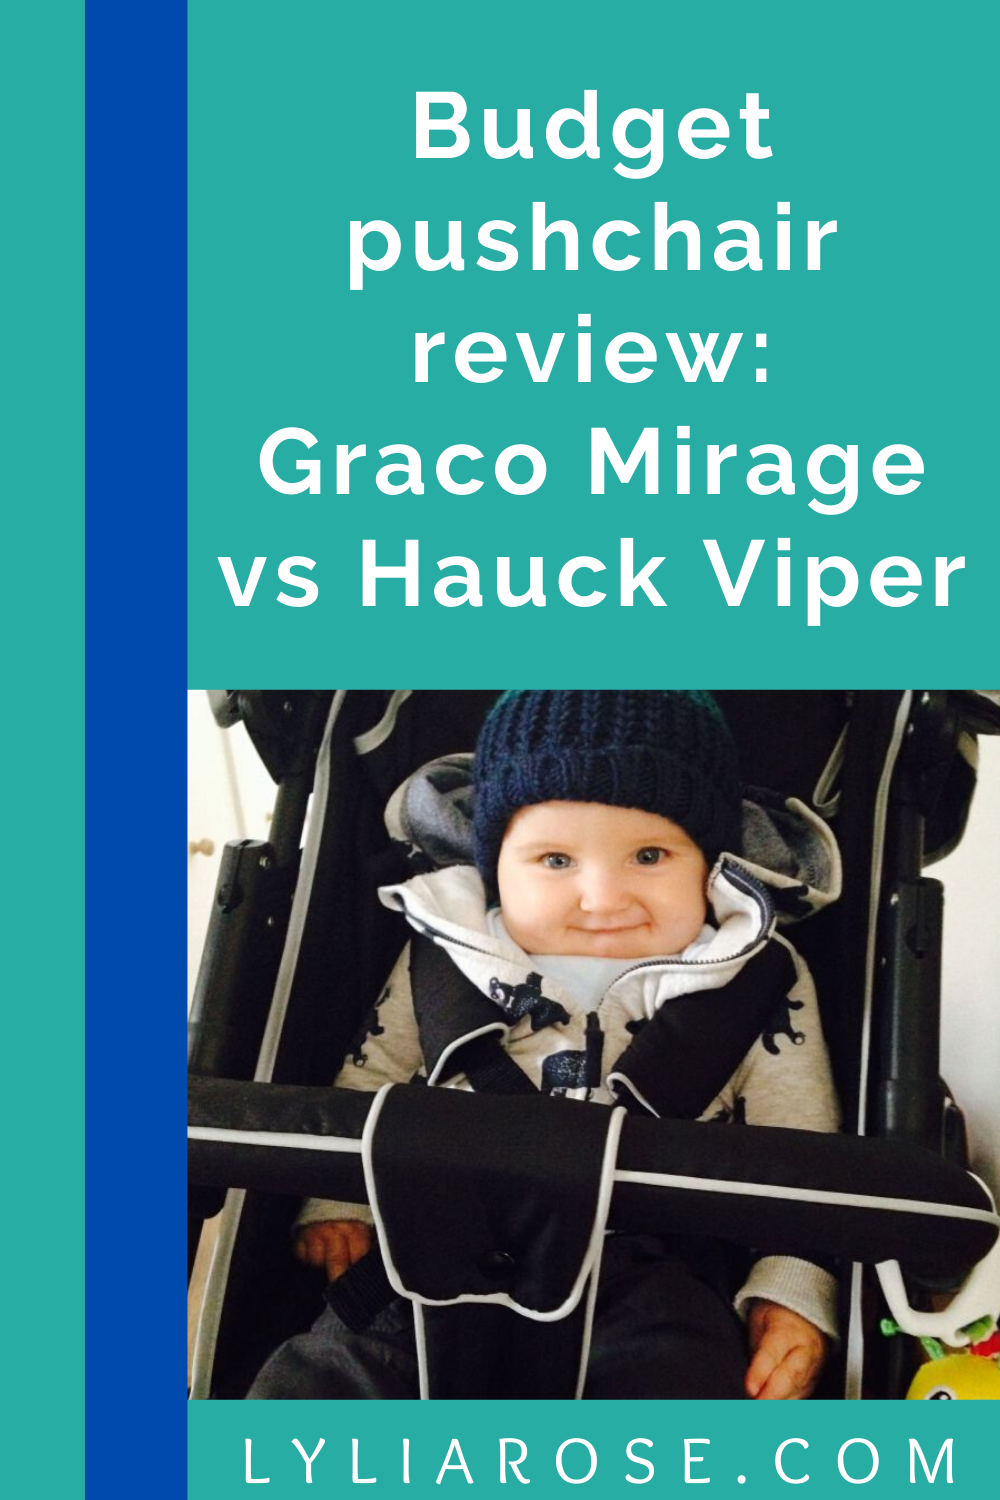 Budget pushchair review_ Graco Mirage vs Hauck Viper (1)